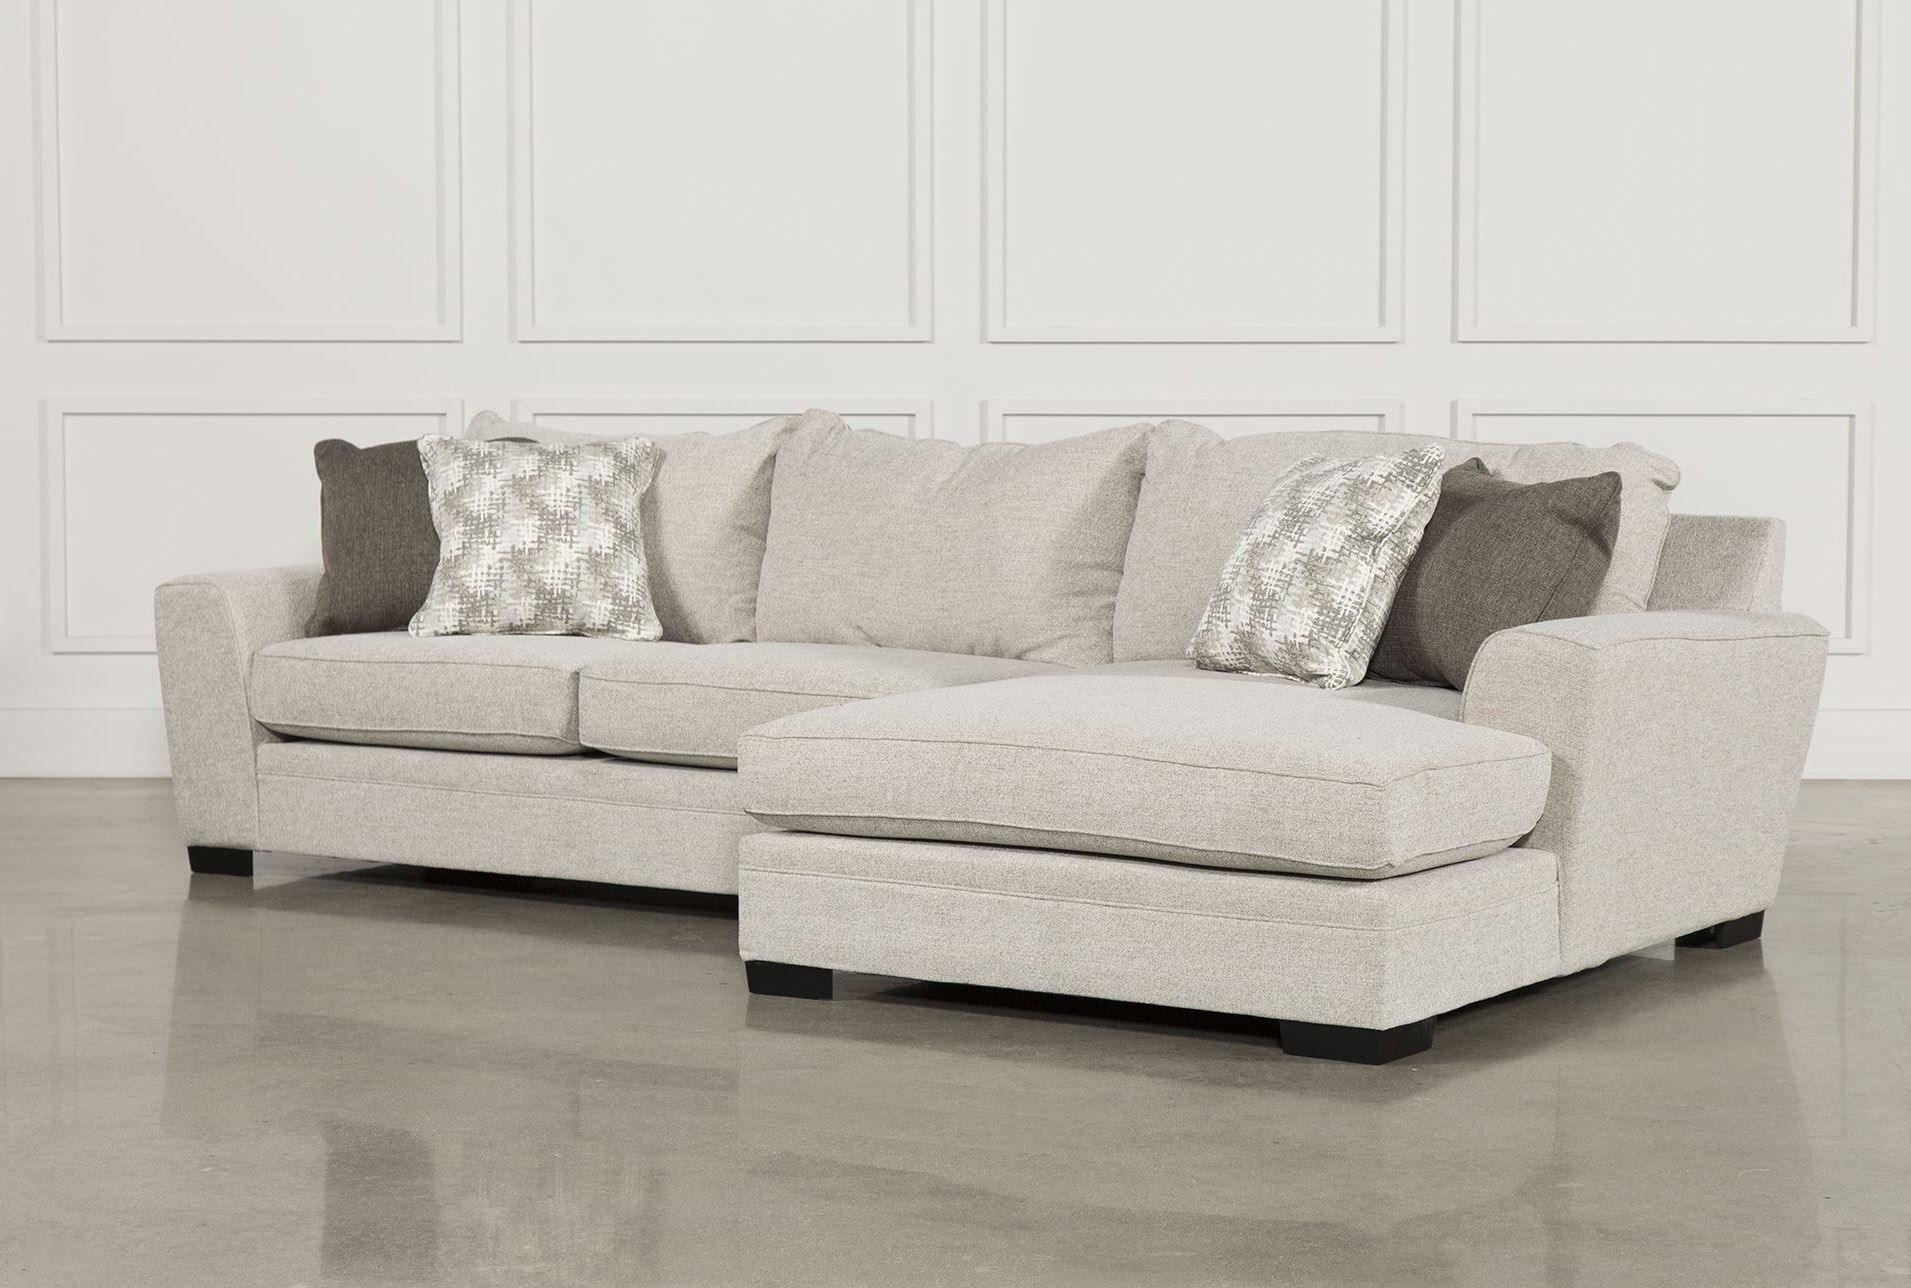 Delano 2 Piece Sectional W/raf Oversized Chaise | Pinterest | Living within Aquarius Light Grey 2 Piece Sectionals With Raf Chaise (Image 12 of 30)